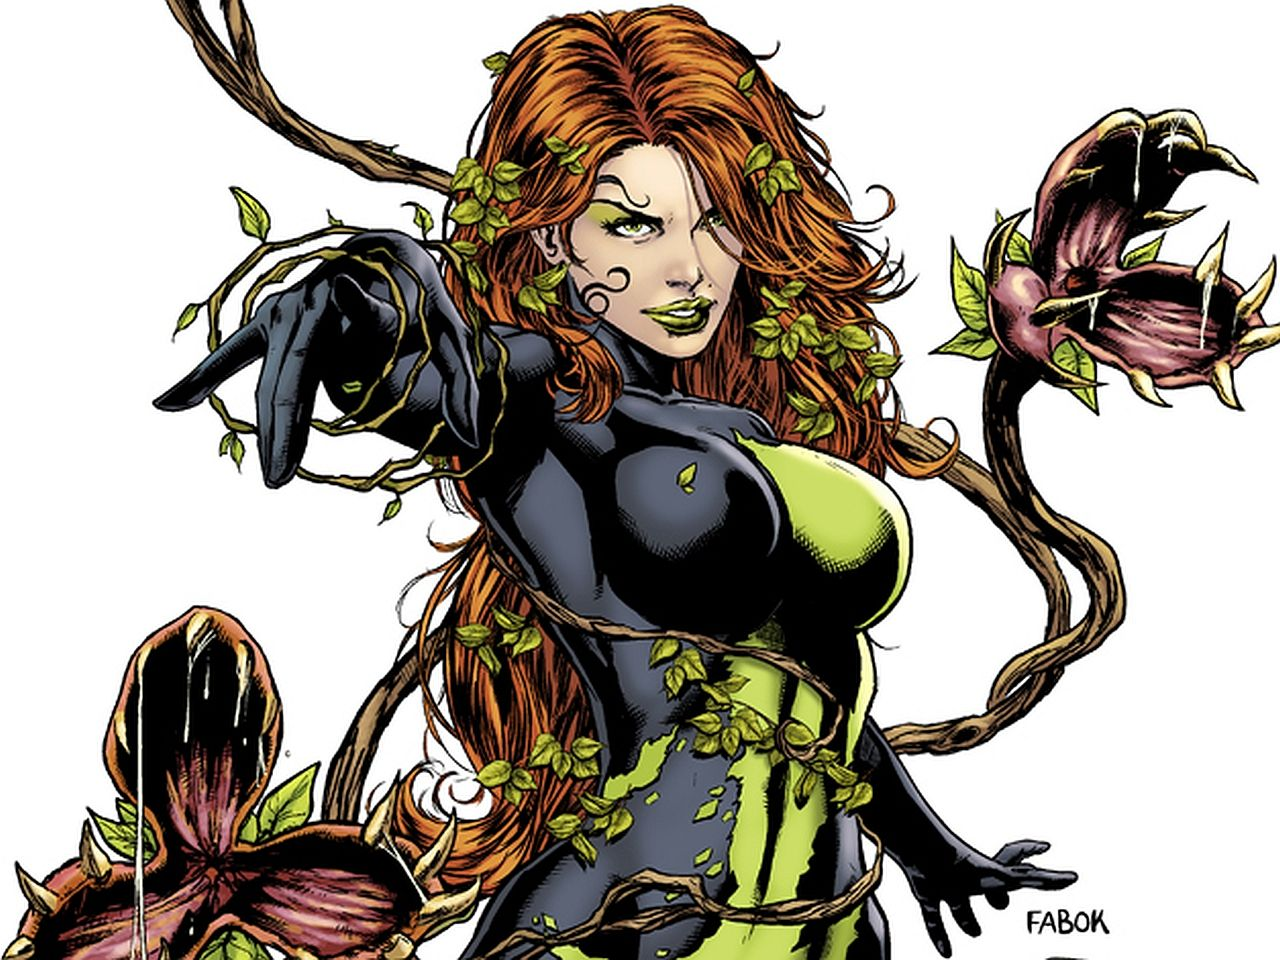 127 Poison Ivy HD Wallpapers | Backgrounds - Wallpaper Abyss - Page 5